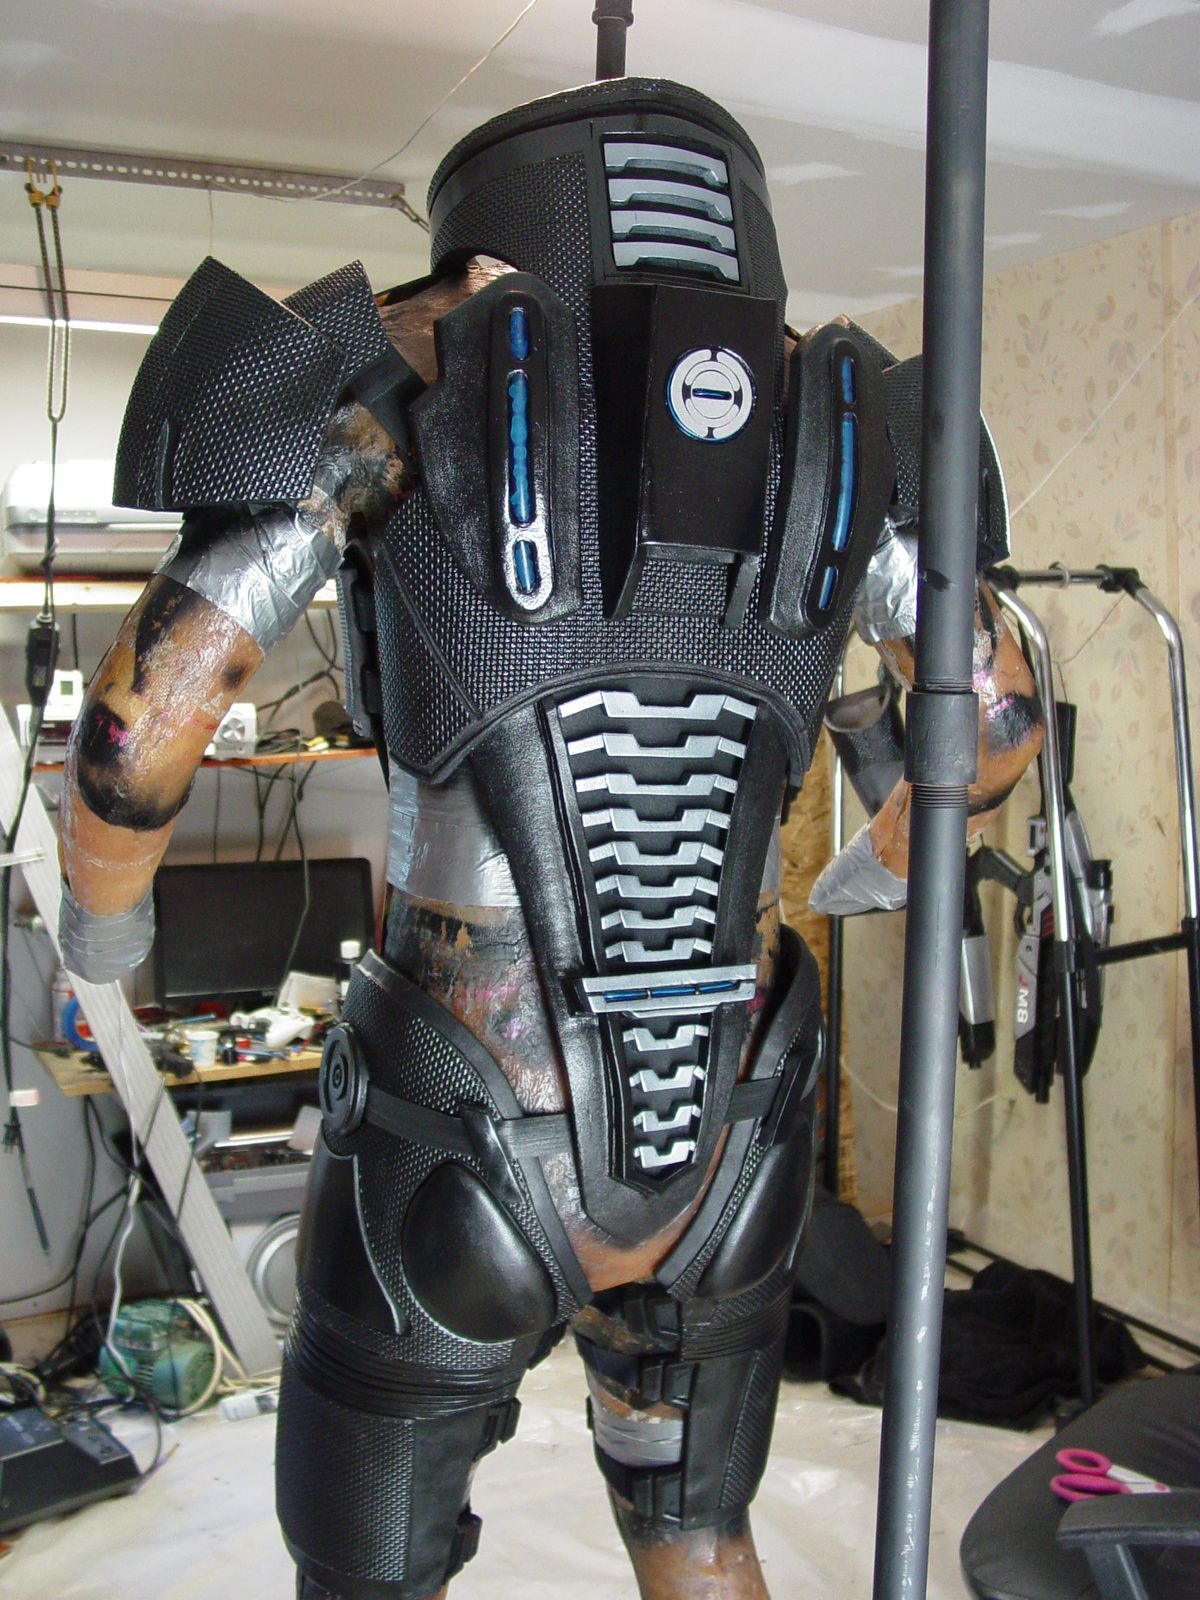 N7 armor rear view costuming armor pinterest n7 for Mass effect 3 n7 armor template